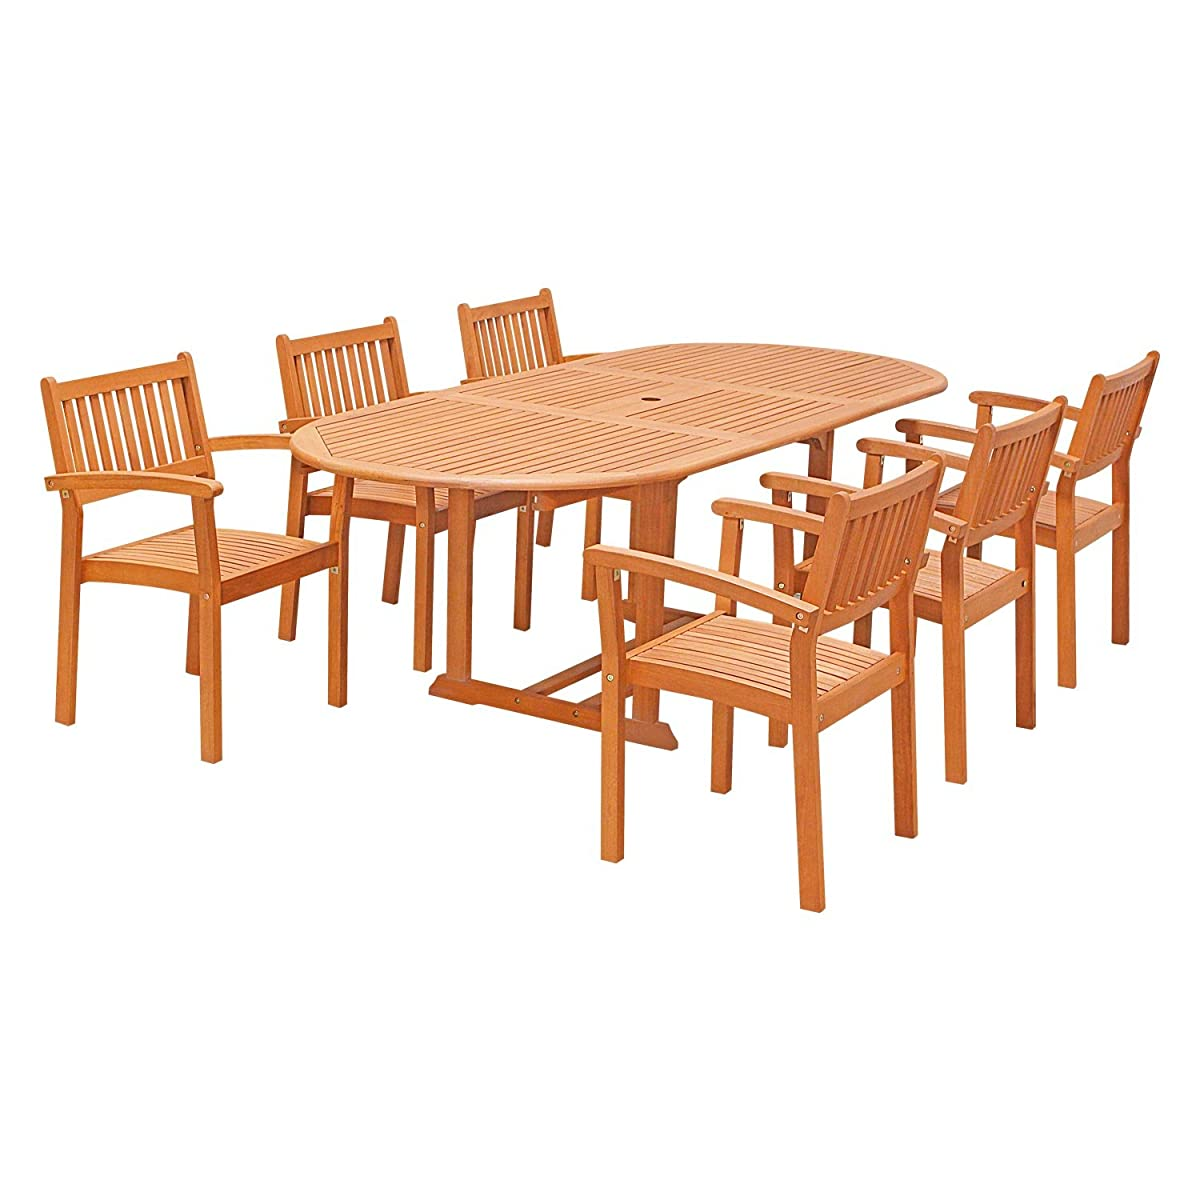 VIFAH V144SET30 7 Piece Outdoor Wood Dining Set with Oval Extension Table and Stacking Chairs